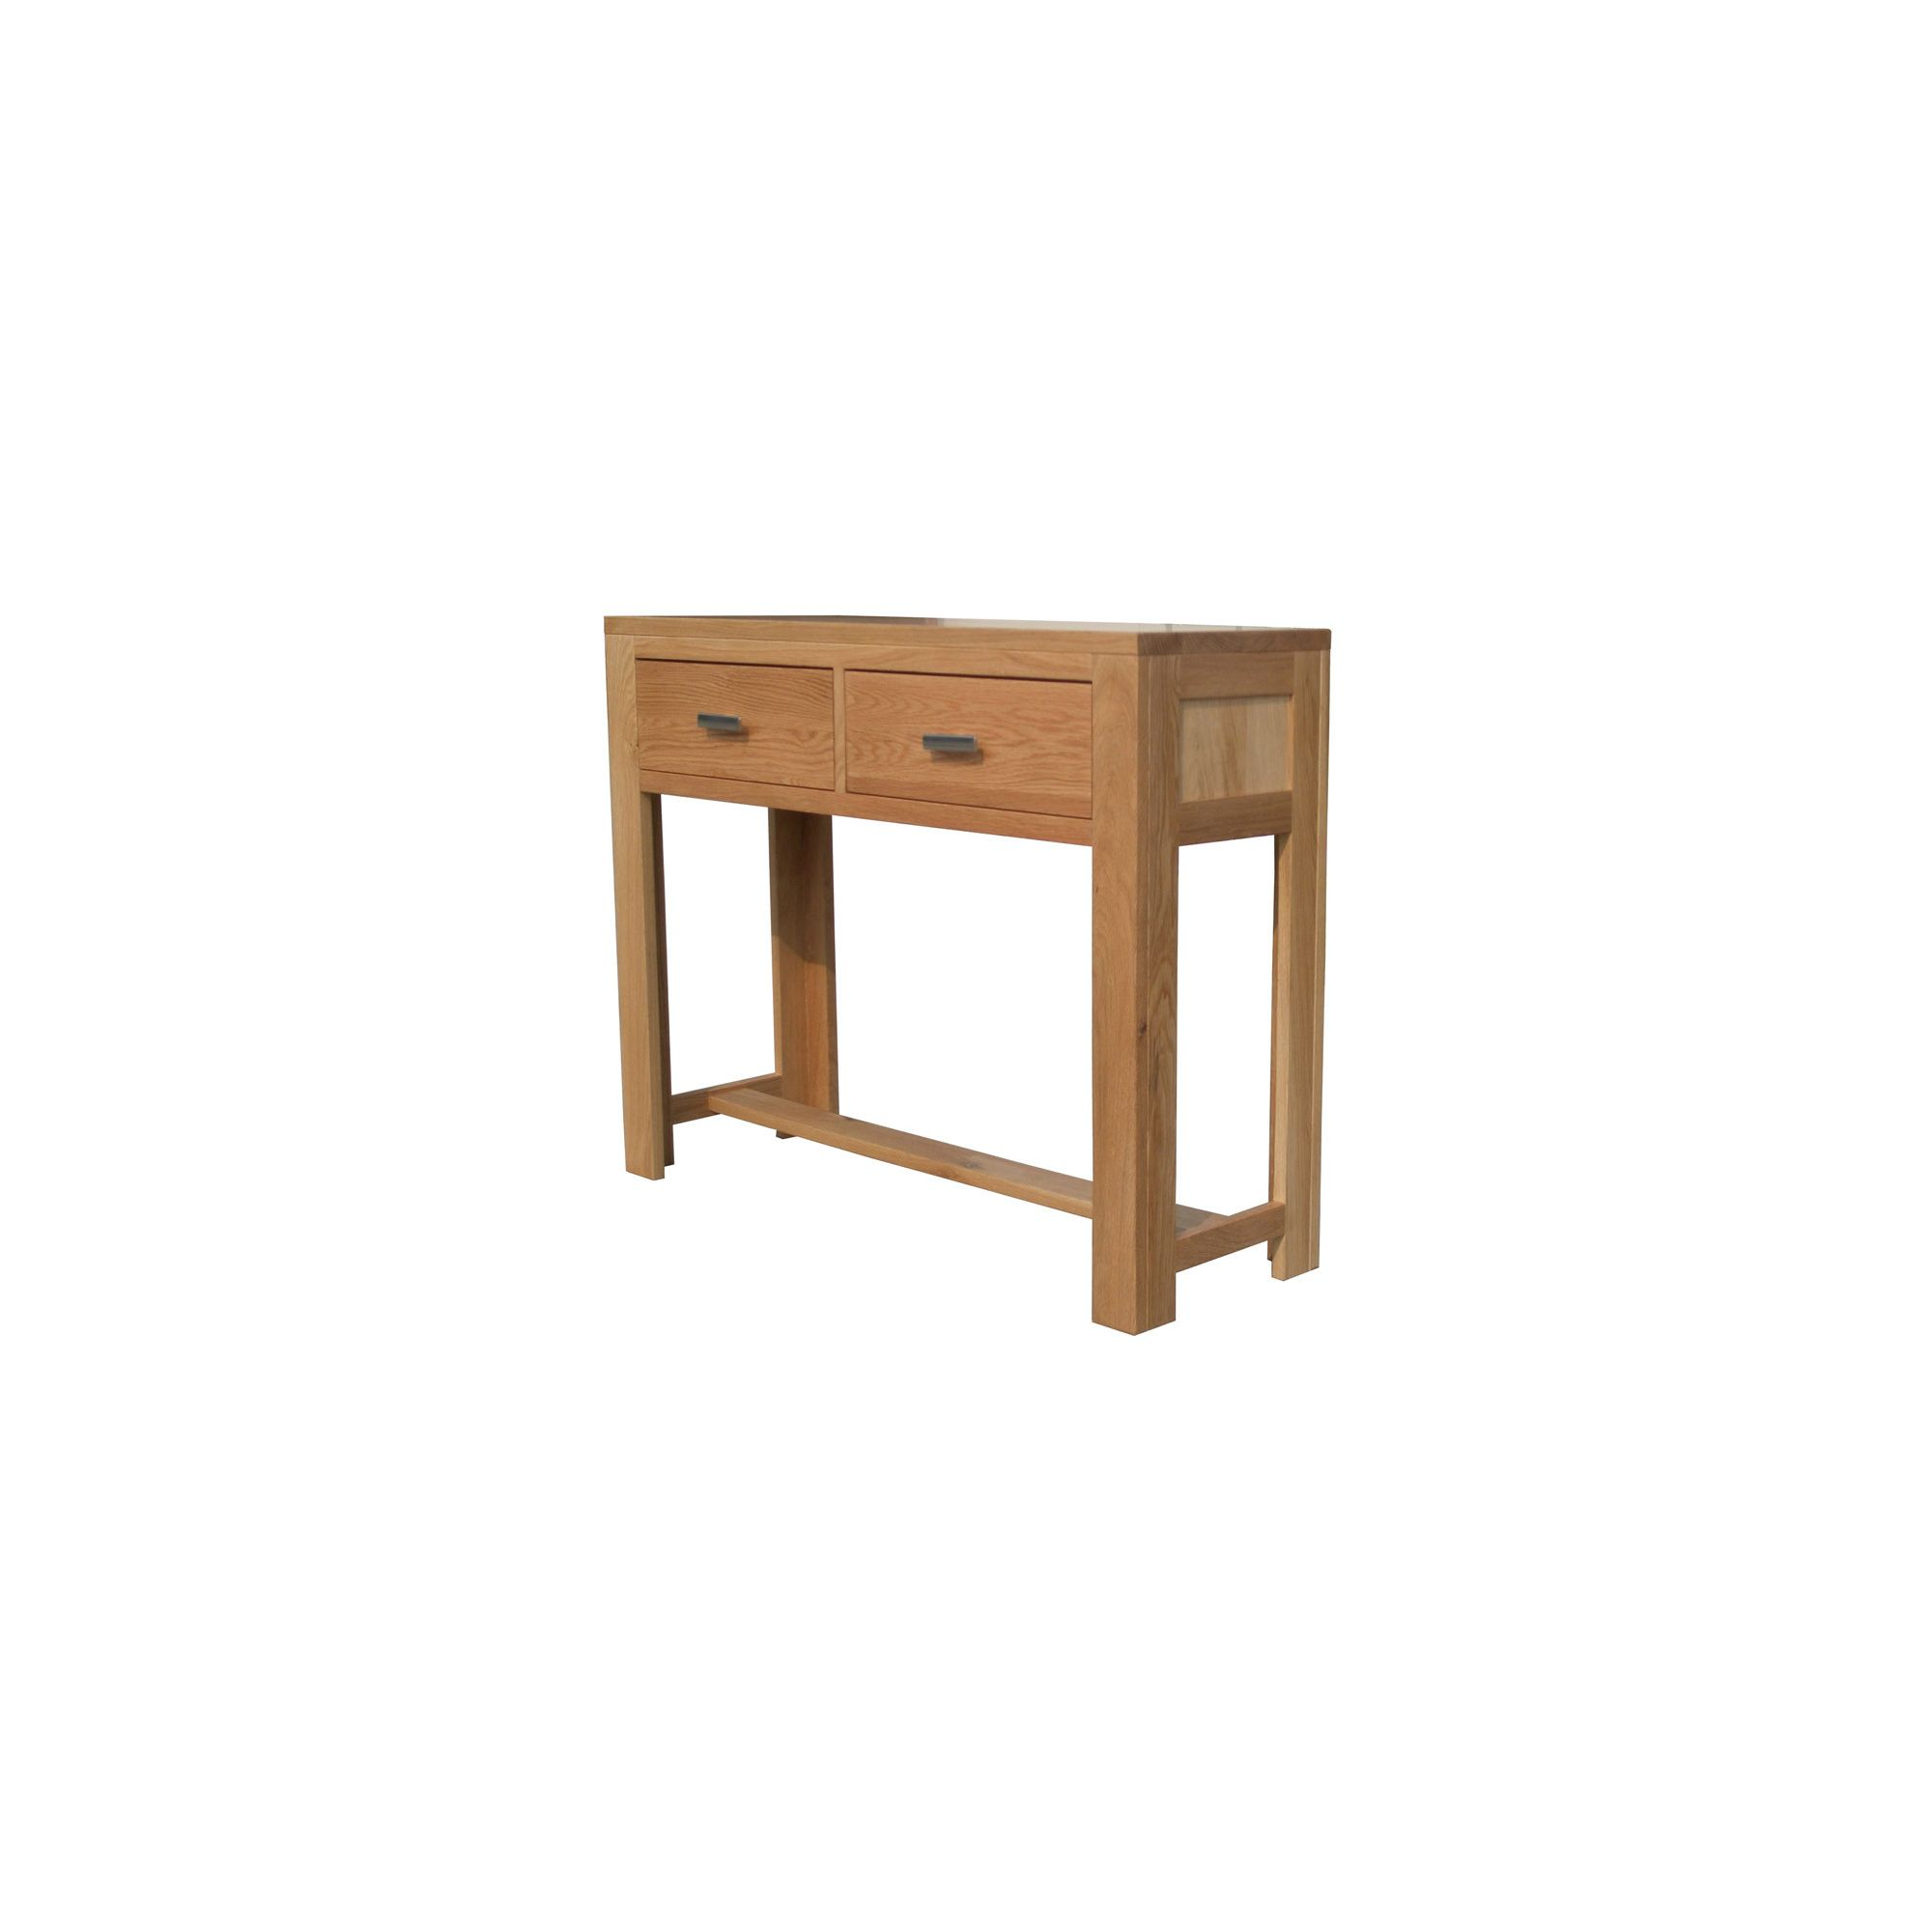 Home Zone Furniture Churchill Oak 2010 Large Console Table in Natural Oak at Tesco Direct